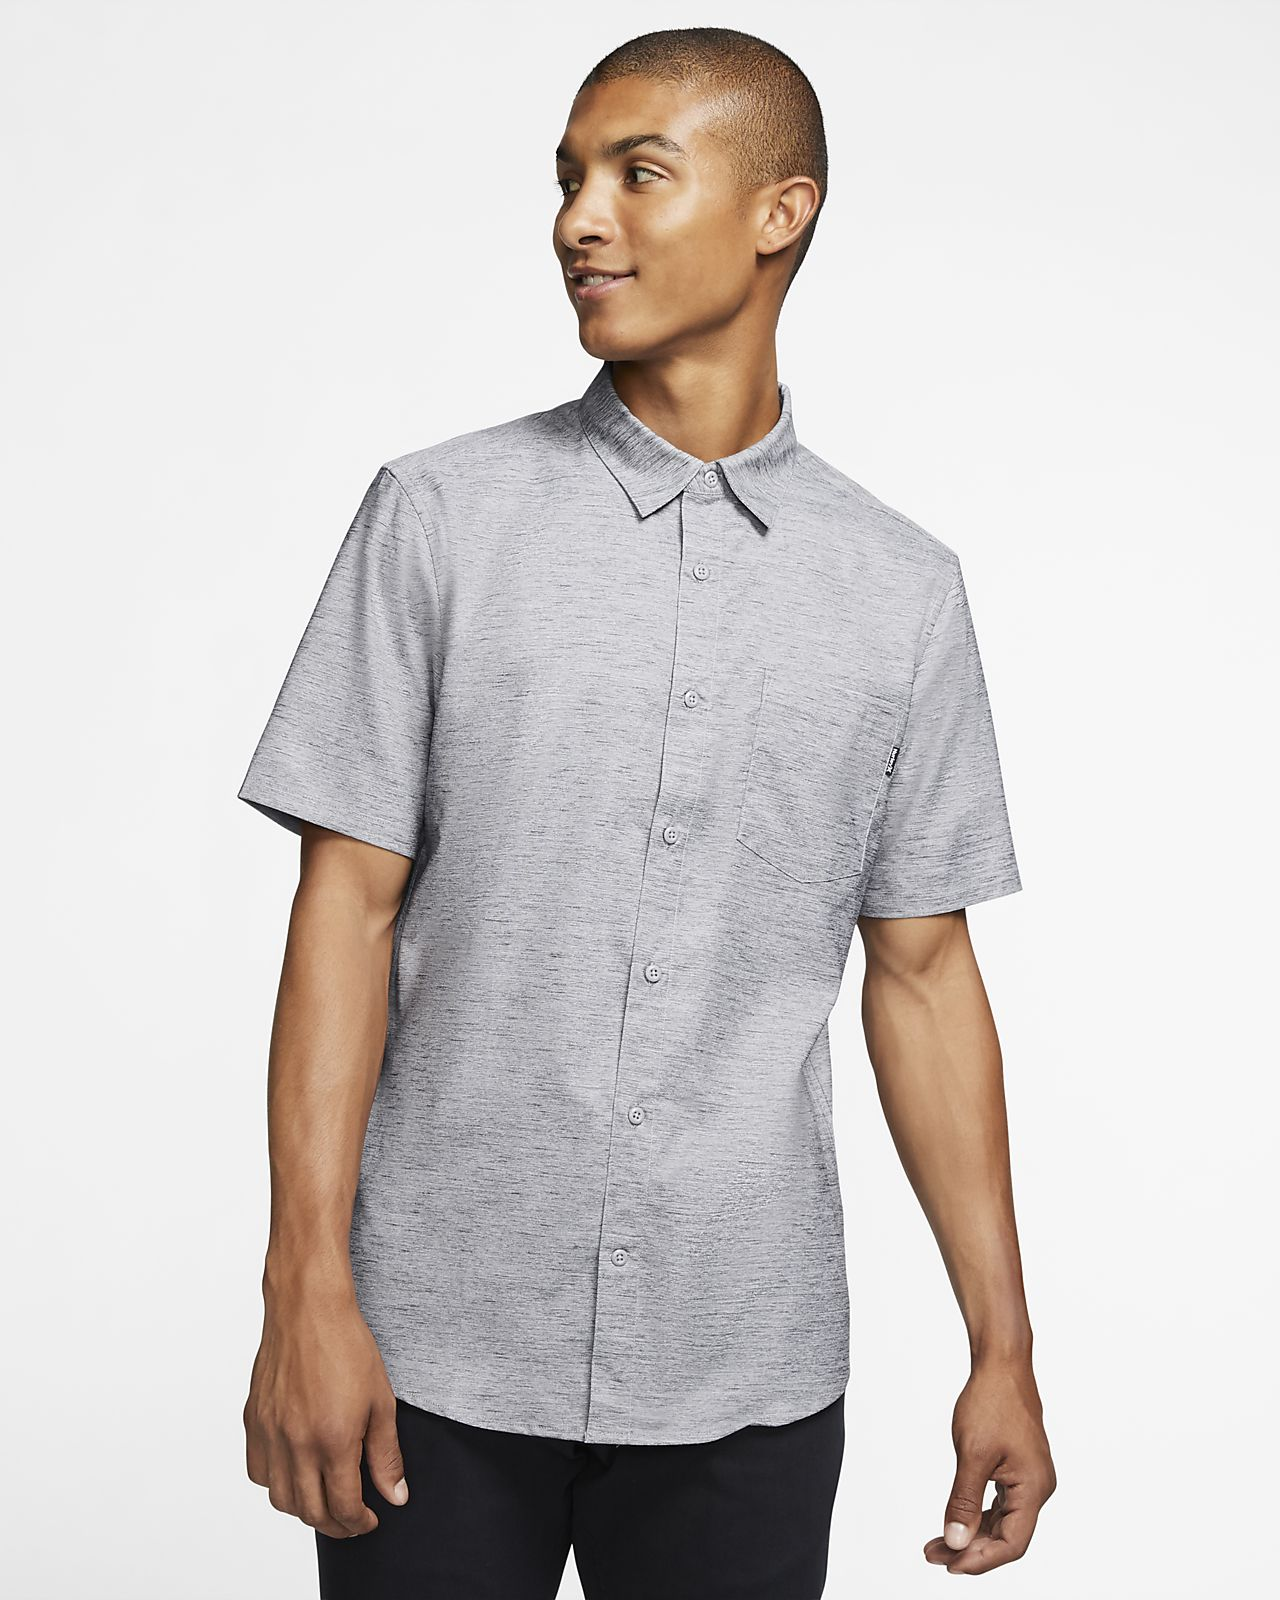 Hurley Marwick Men's Short-Sleeve Top